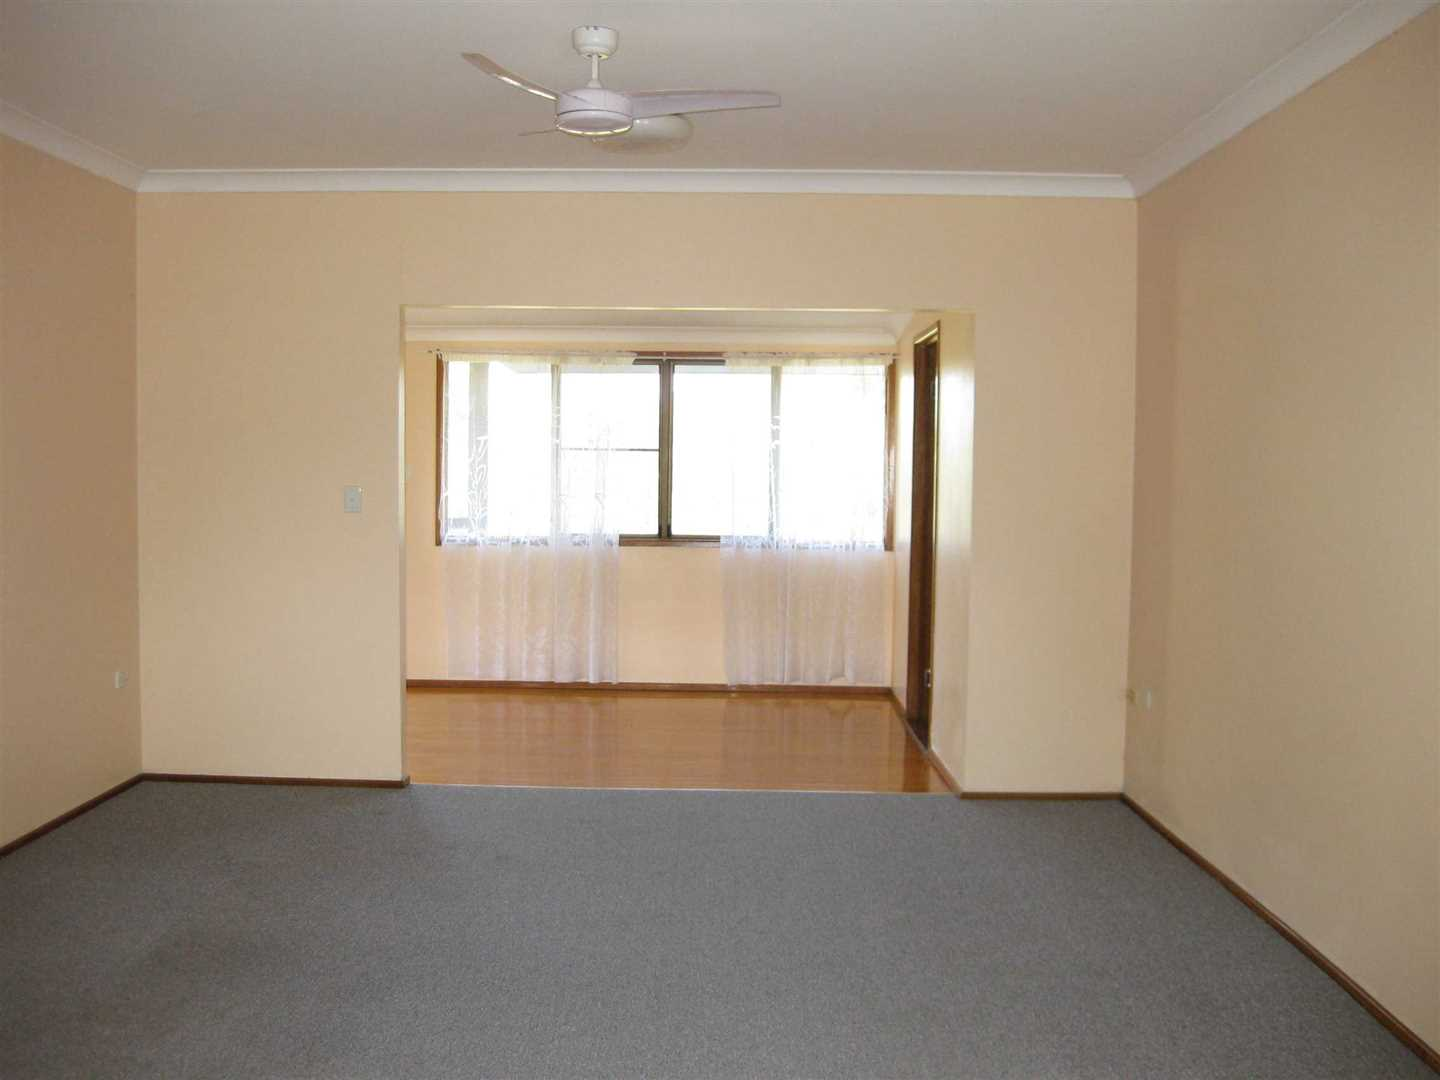 Inside view of part of home showing part of lounge